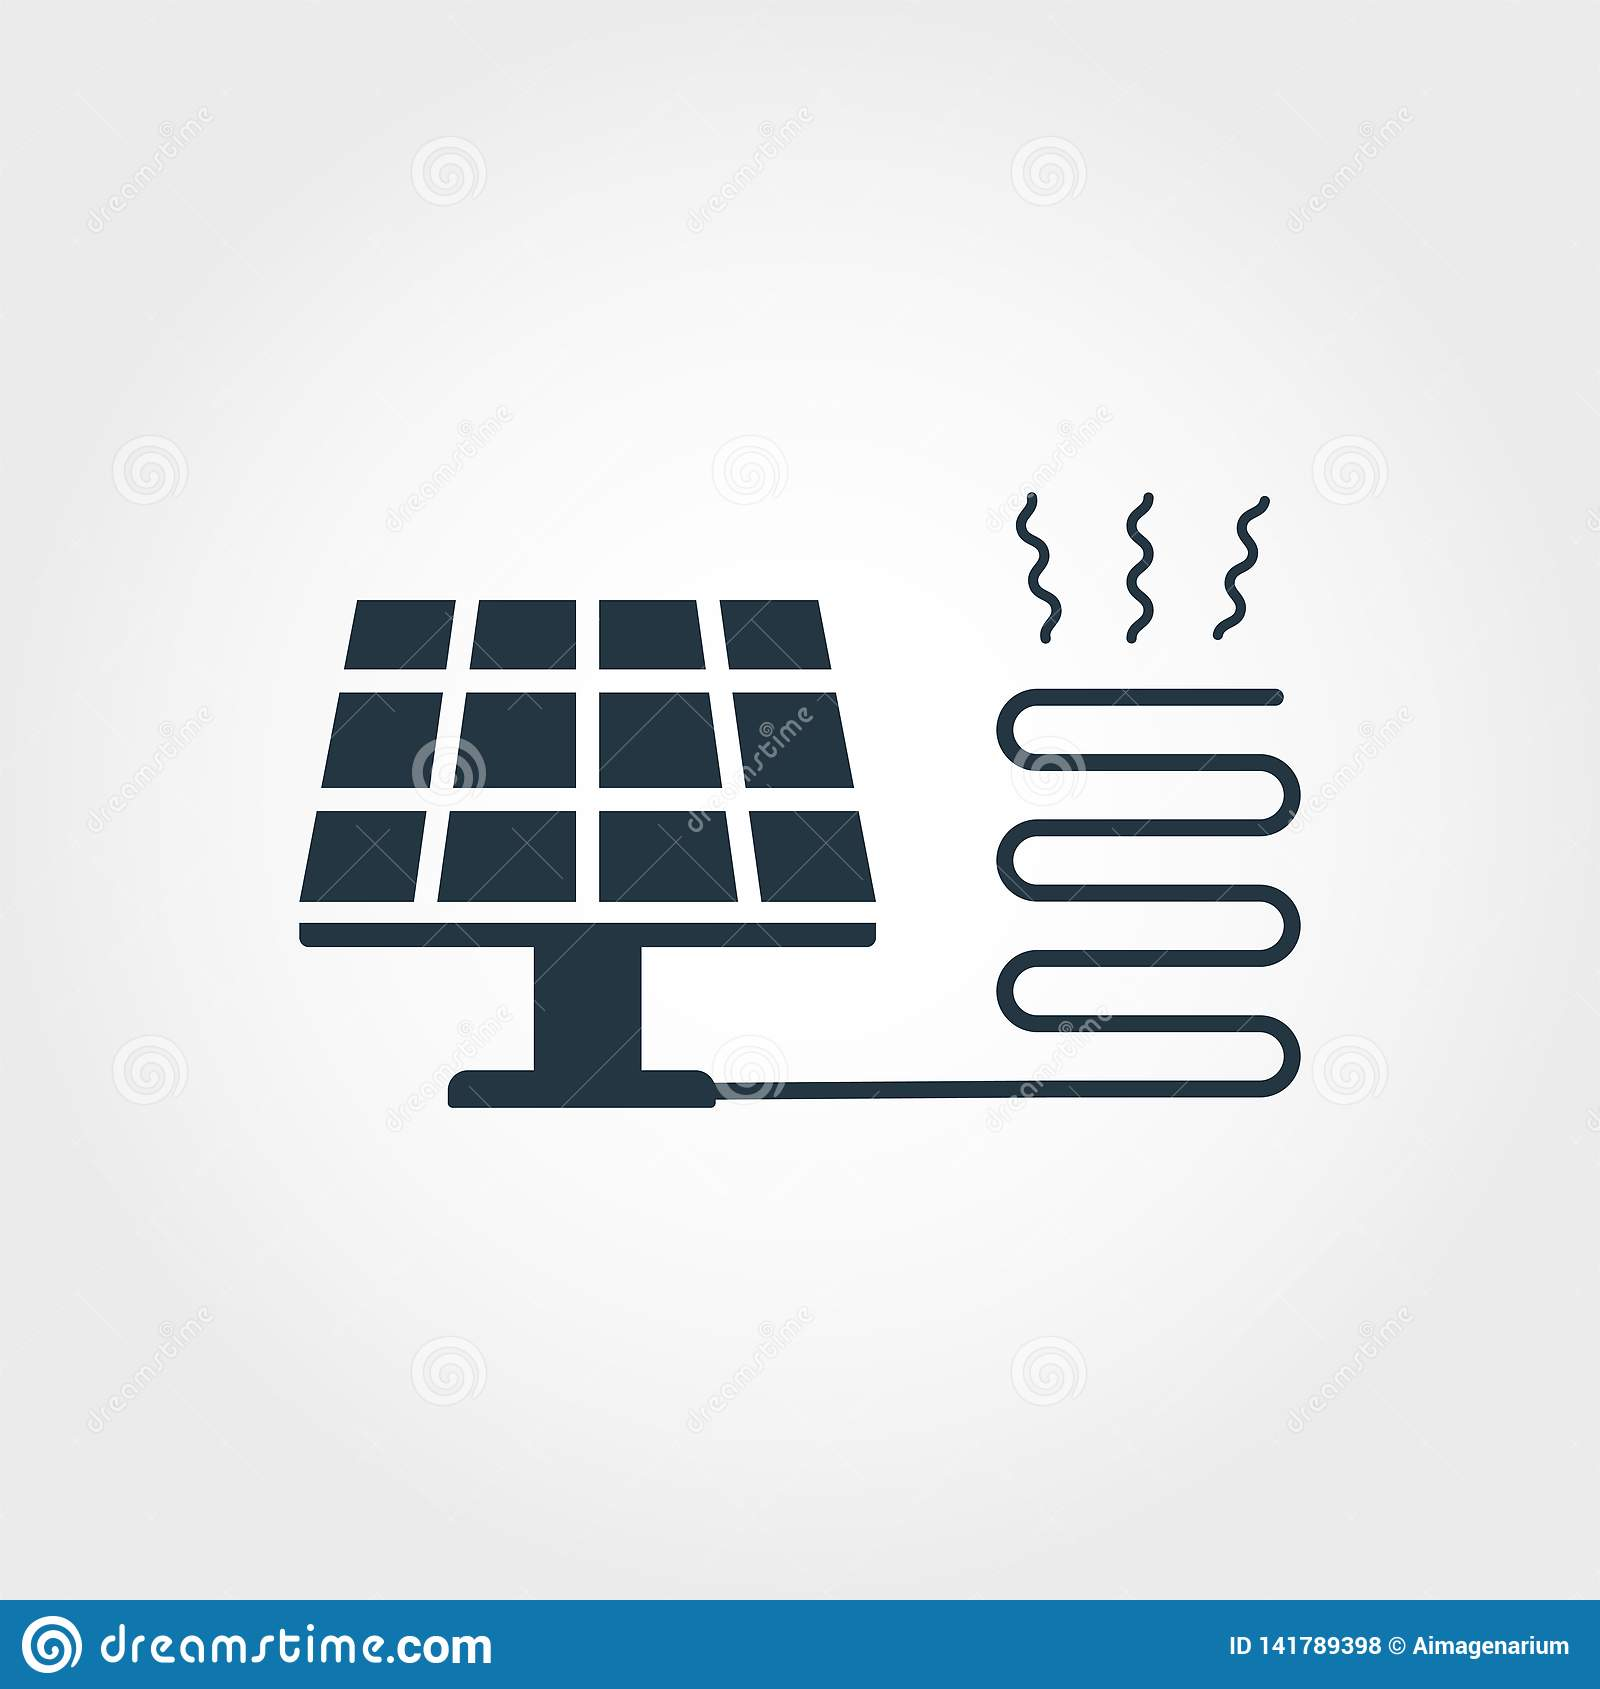 Solar Heating Creative Icon Monochrome Style Design From Urbanism Icons Collection Solar Heating Icon For Web Design Stock Vector Illustration Of Alternative Icon 141789398